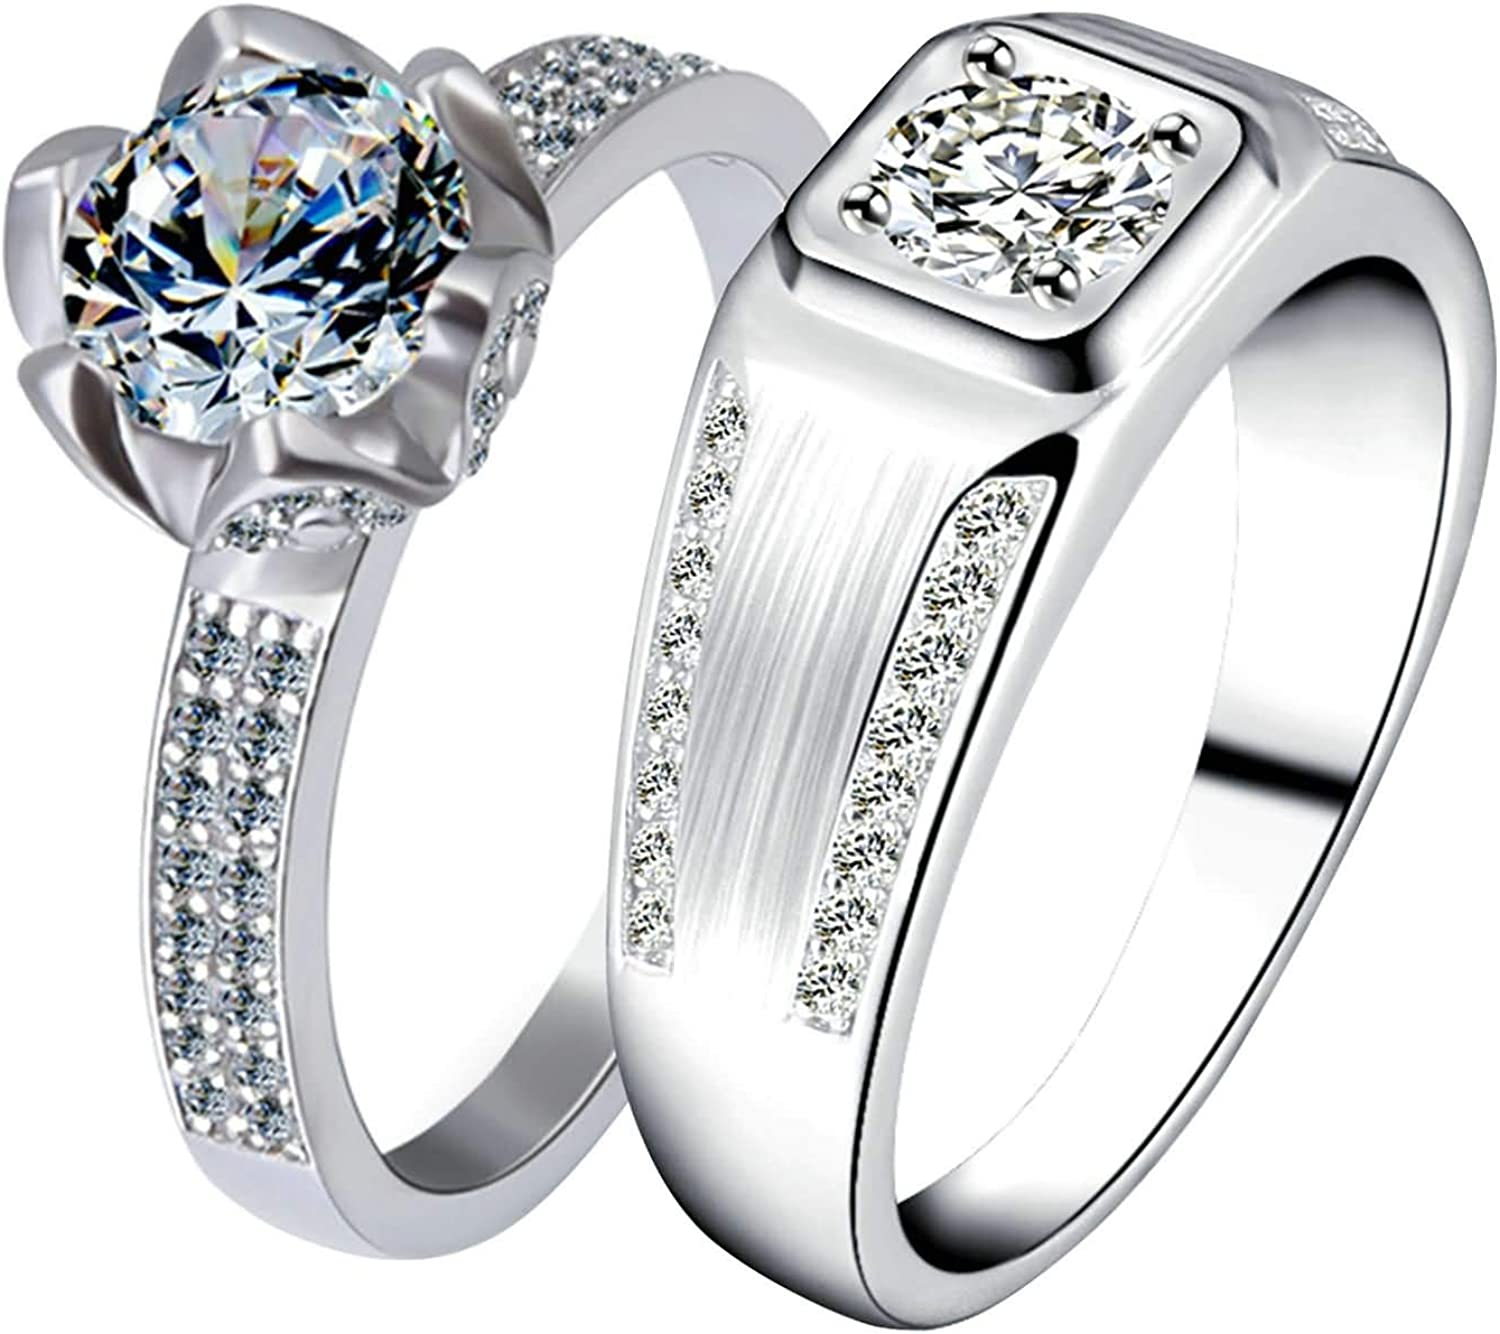 Gnzoe 1 Pair His & Hers Couples Wedding Rings Set for Men Women 925 Sterling Silver Flower White Cubic Zirconia Ring